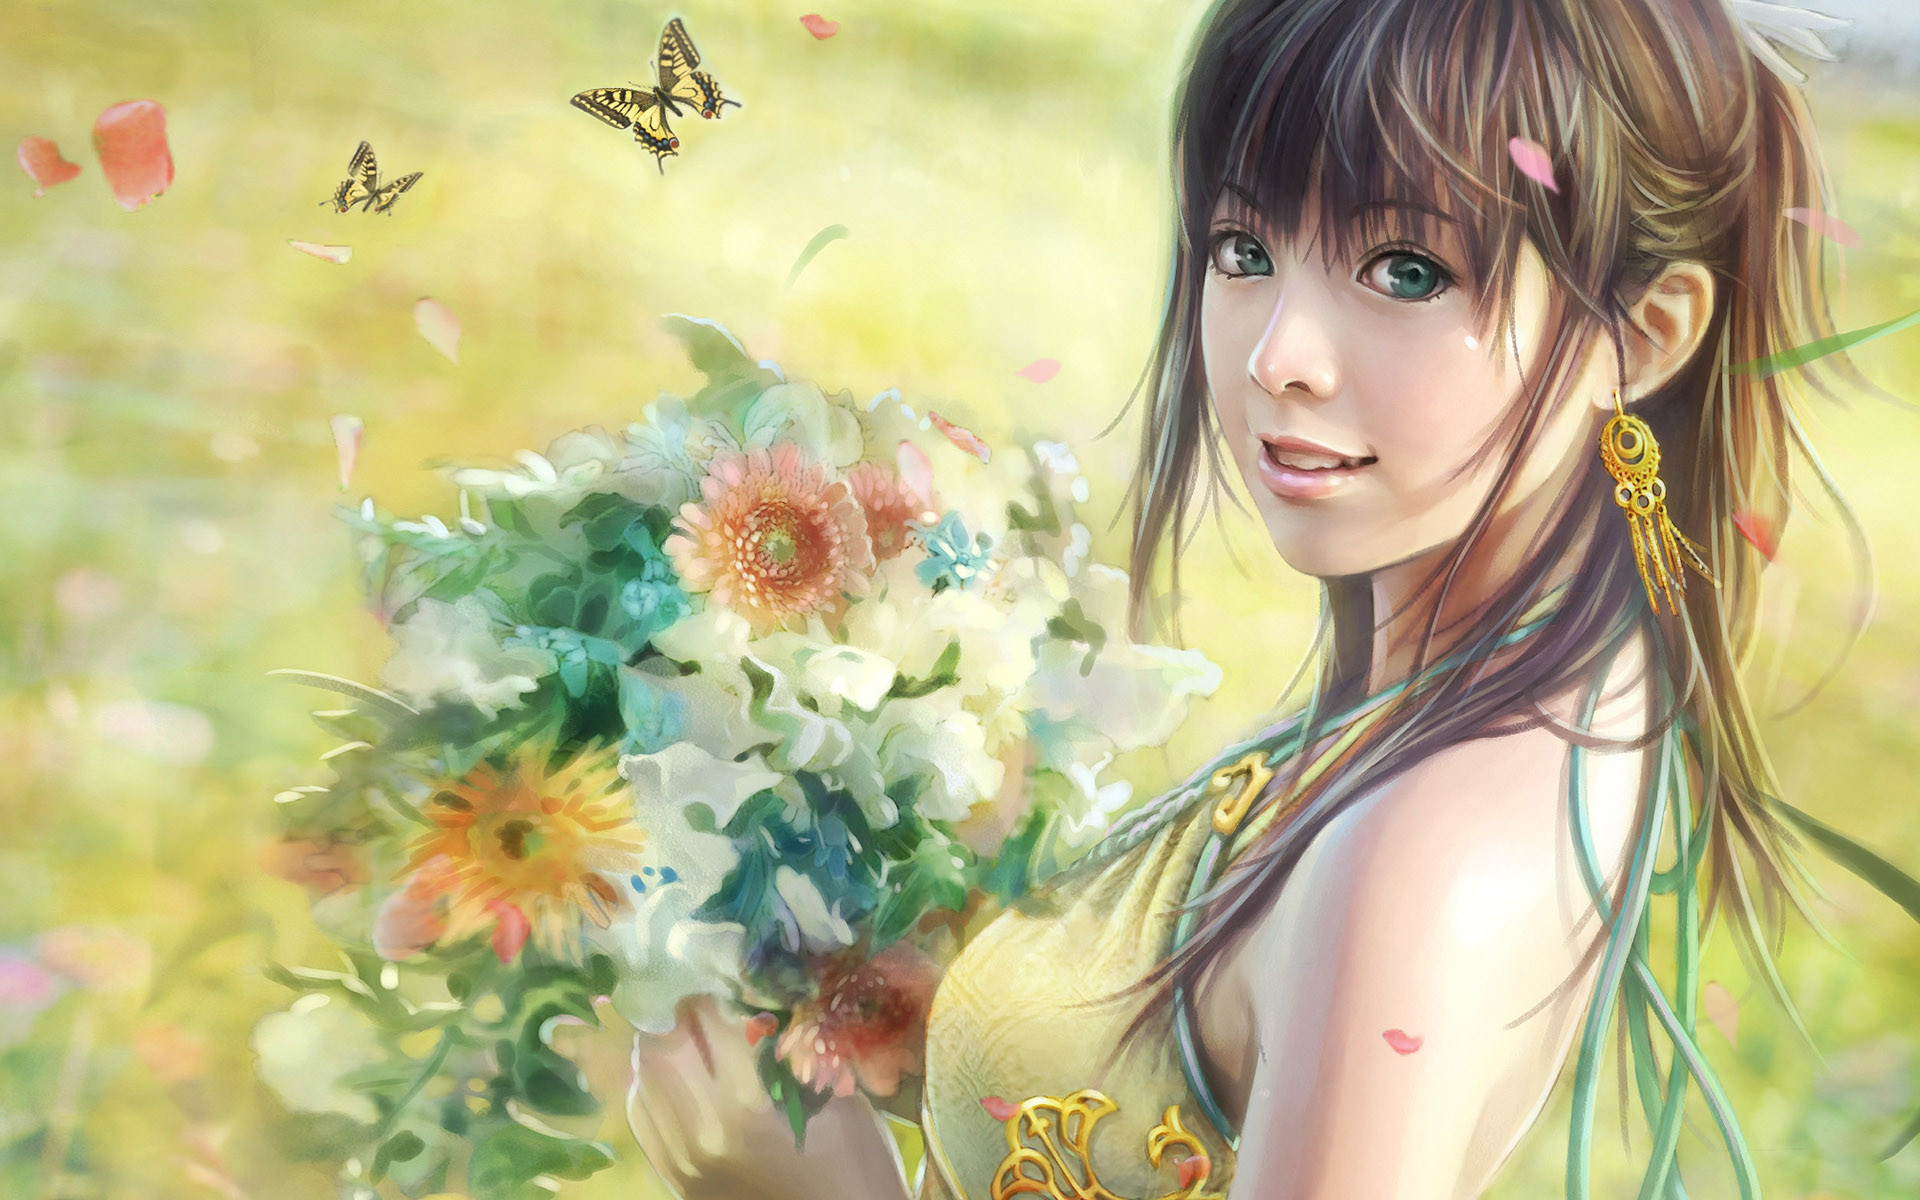 Pretty Girls Wallpapers 54 Images